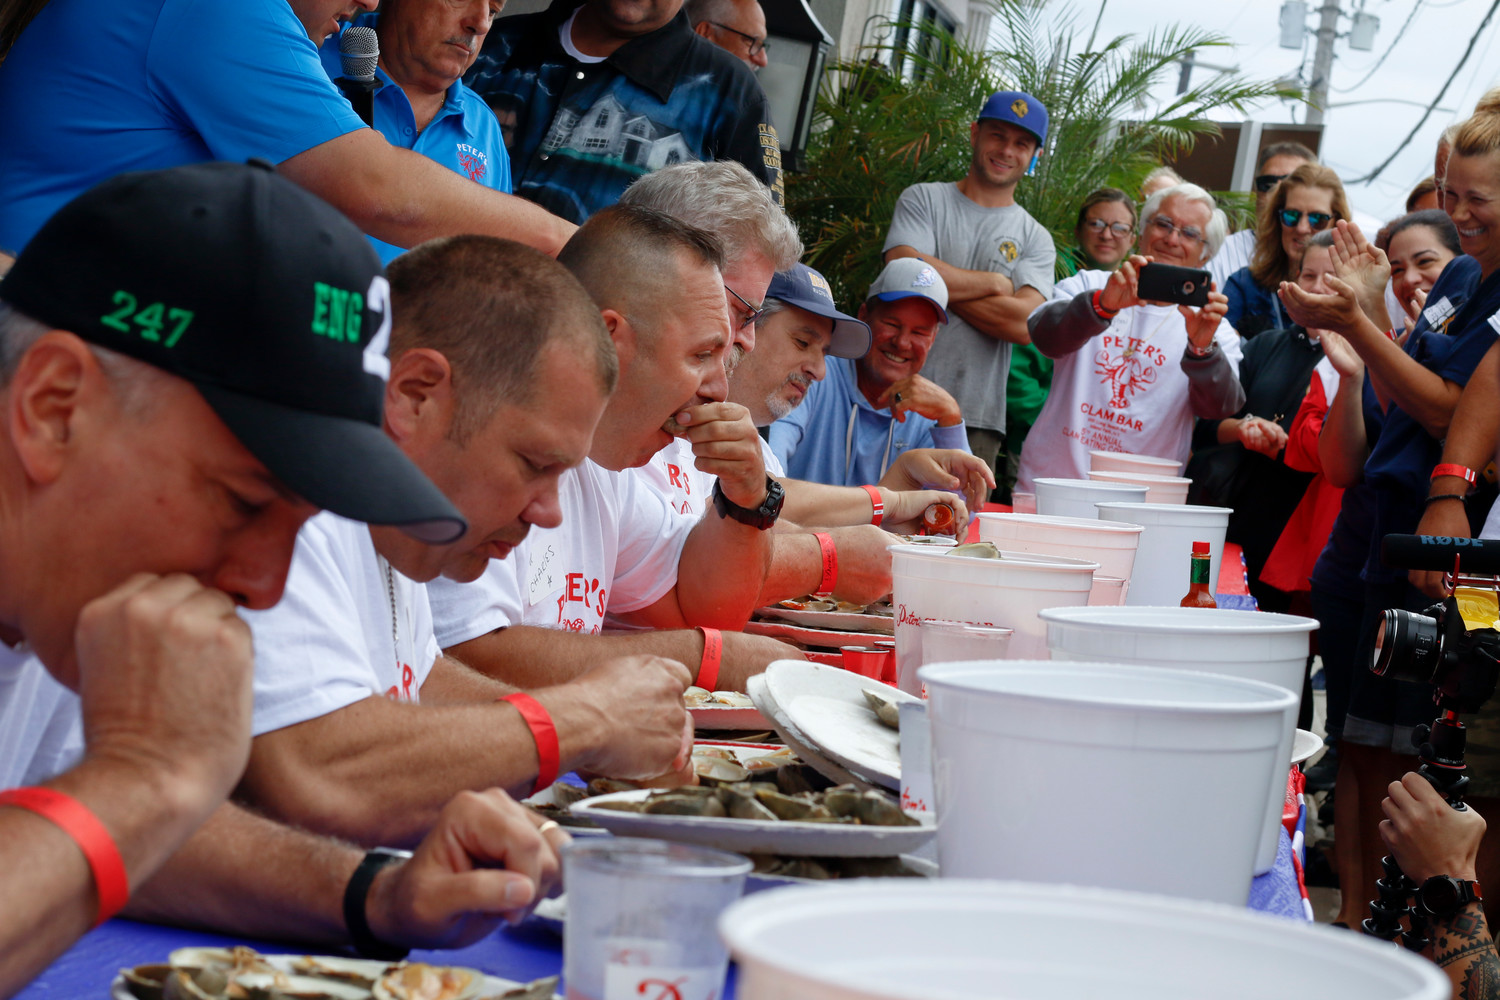 Fire Department members competed in the first heat of round one at Peter's Clam Bar clam eating contest. From left, Ken O'Connor with Lynbrook, Scott Ballard with Stewart Manor, Charles Hendry with Hempstead, Pete Adams with Island Park and Jeffrey Katz with Rockville Centre.